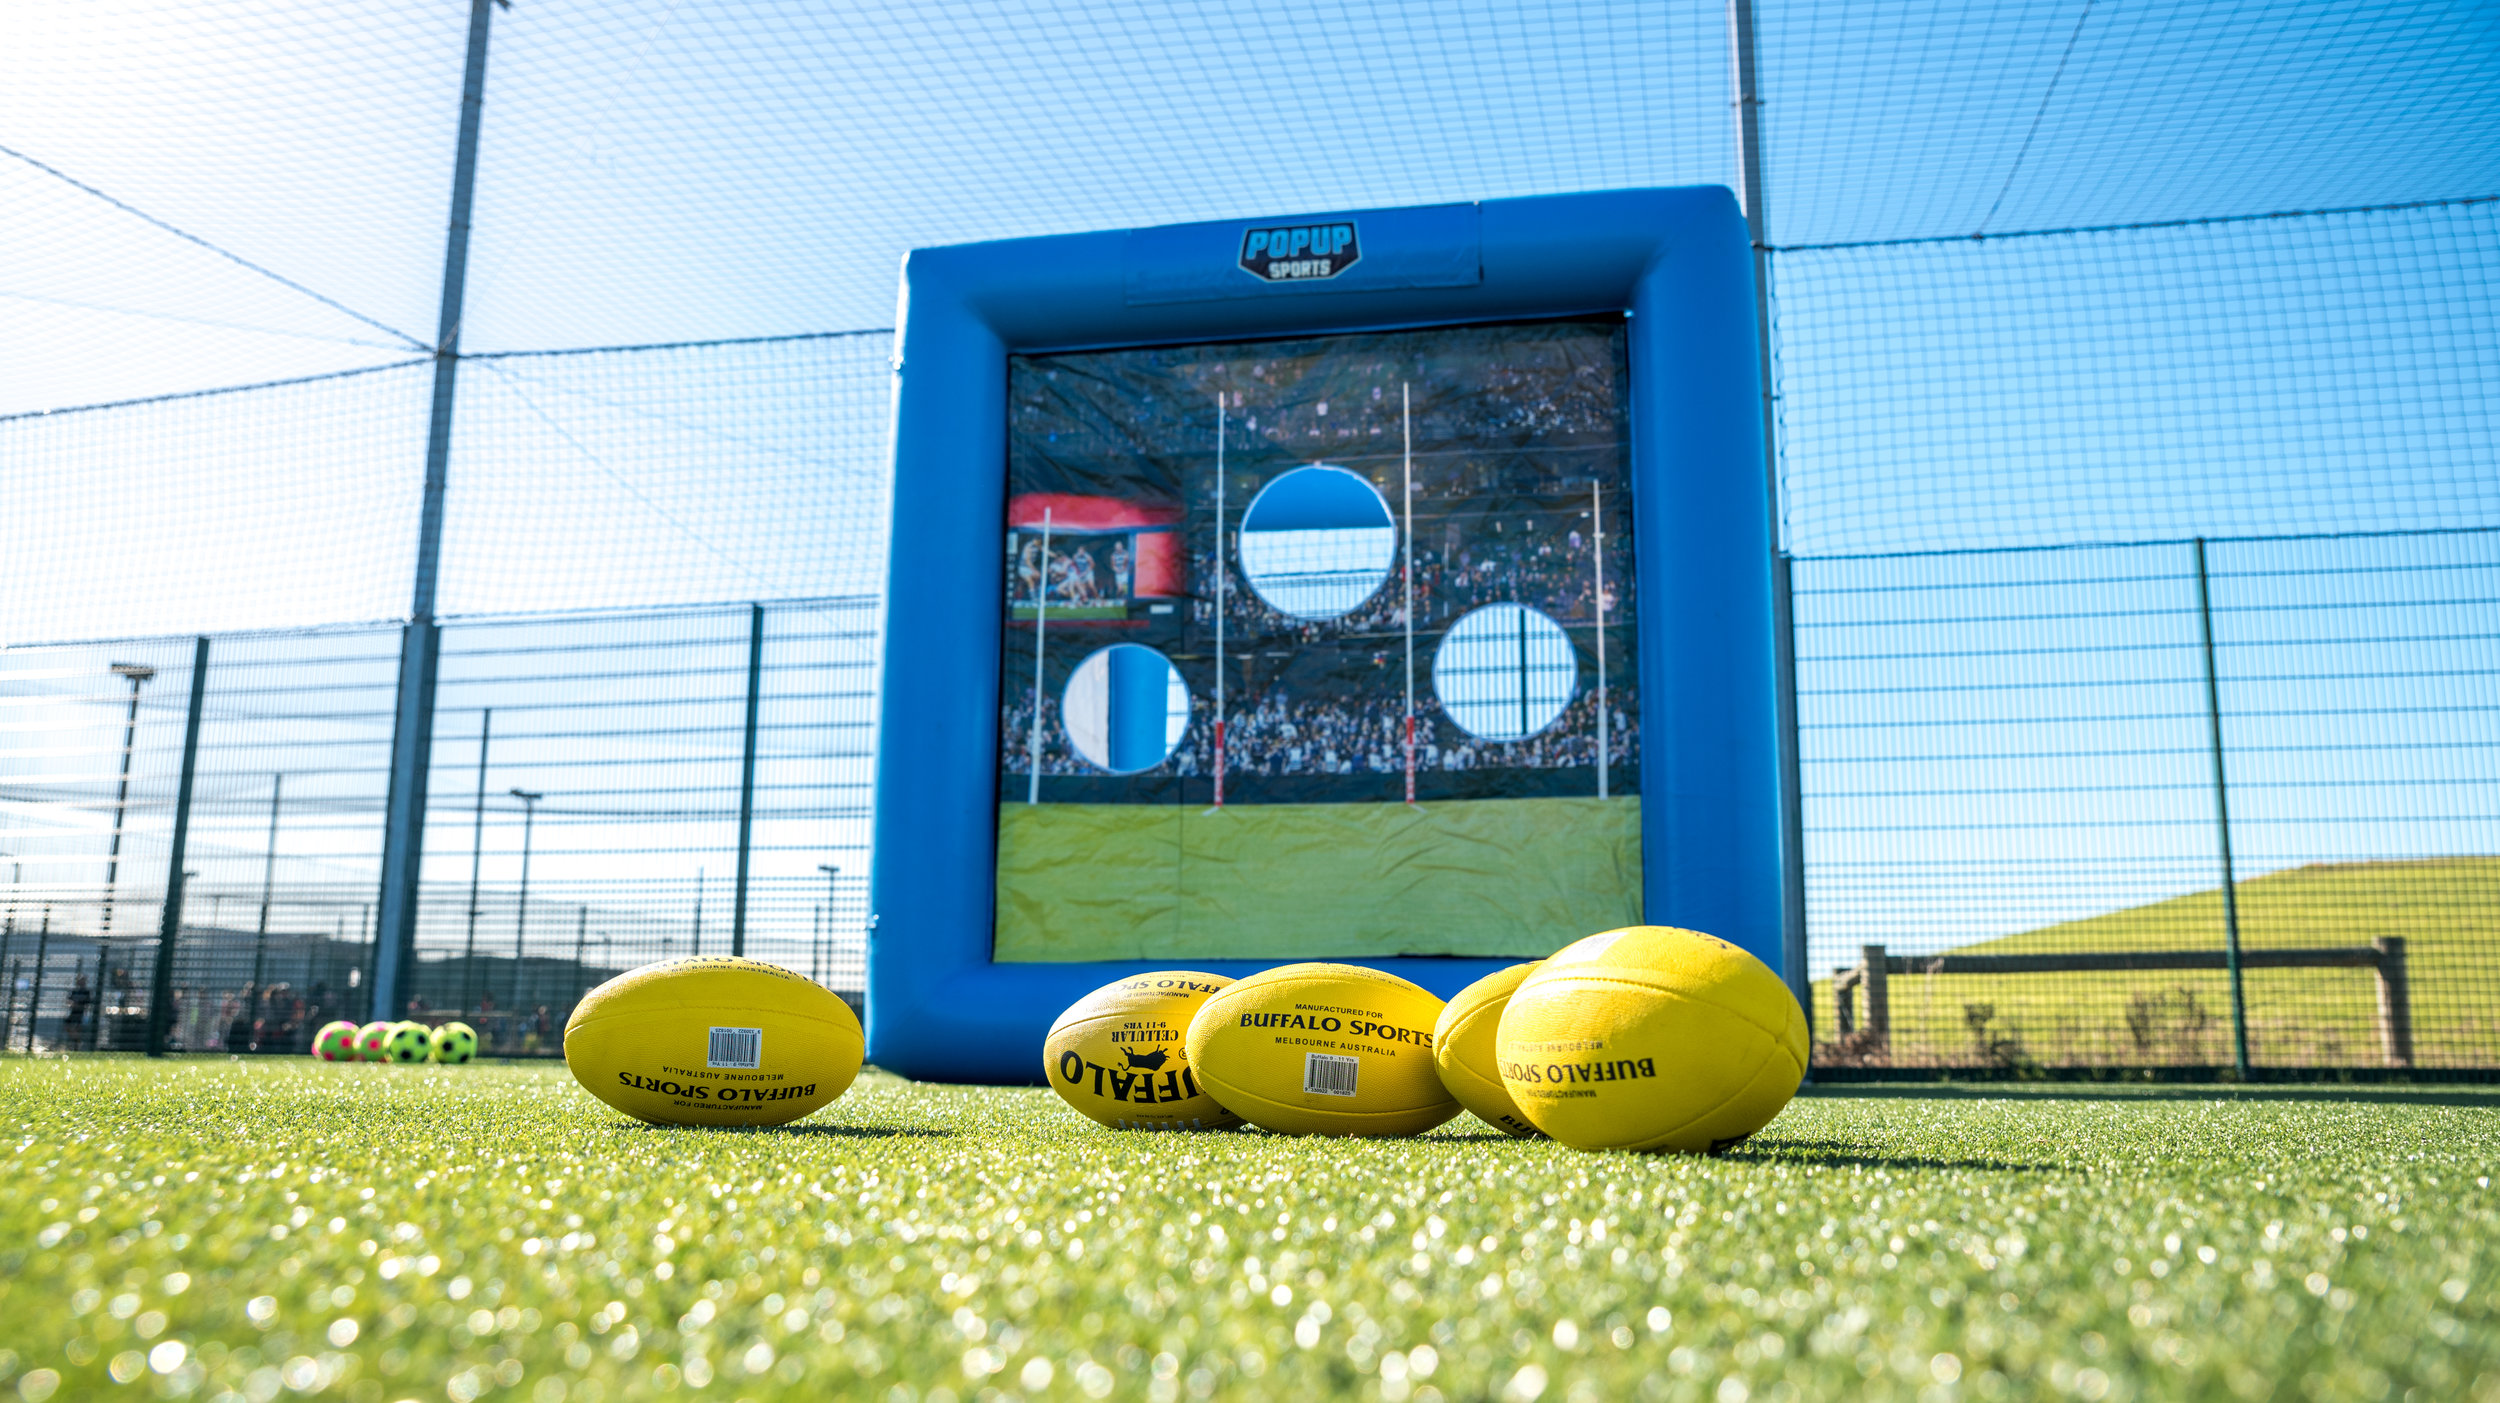 Junior footy players can work on their kicking accuracy with this fun goal challenge.